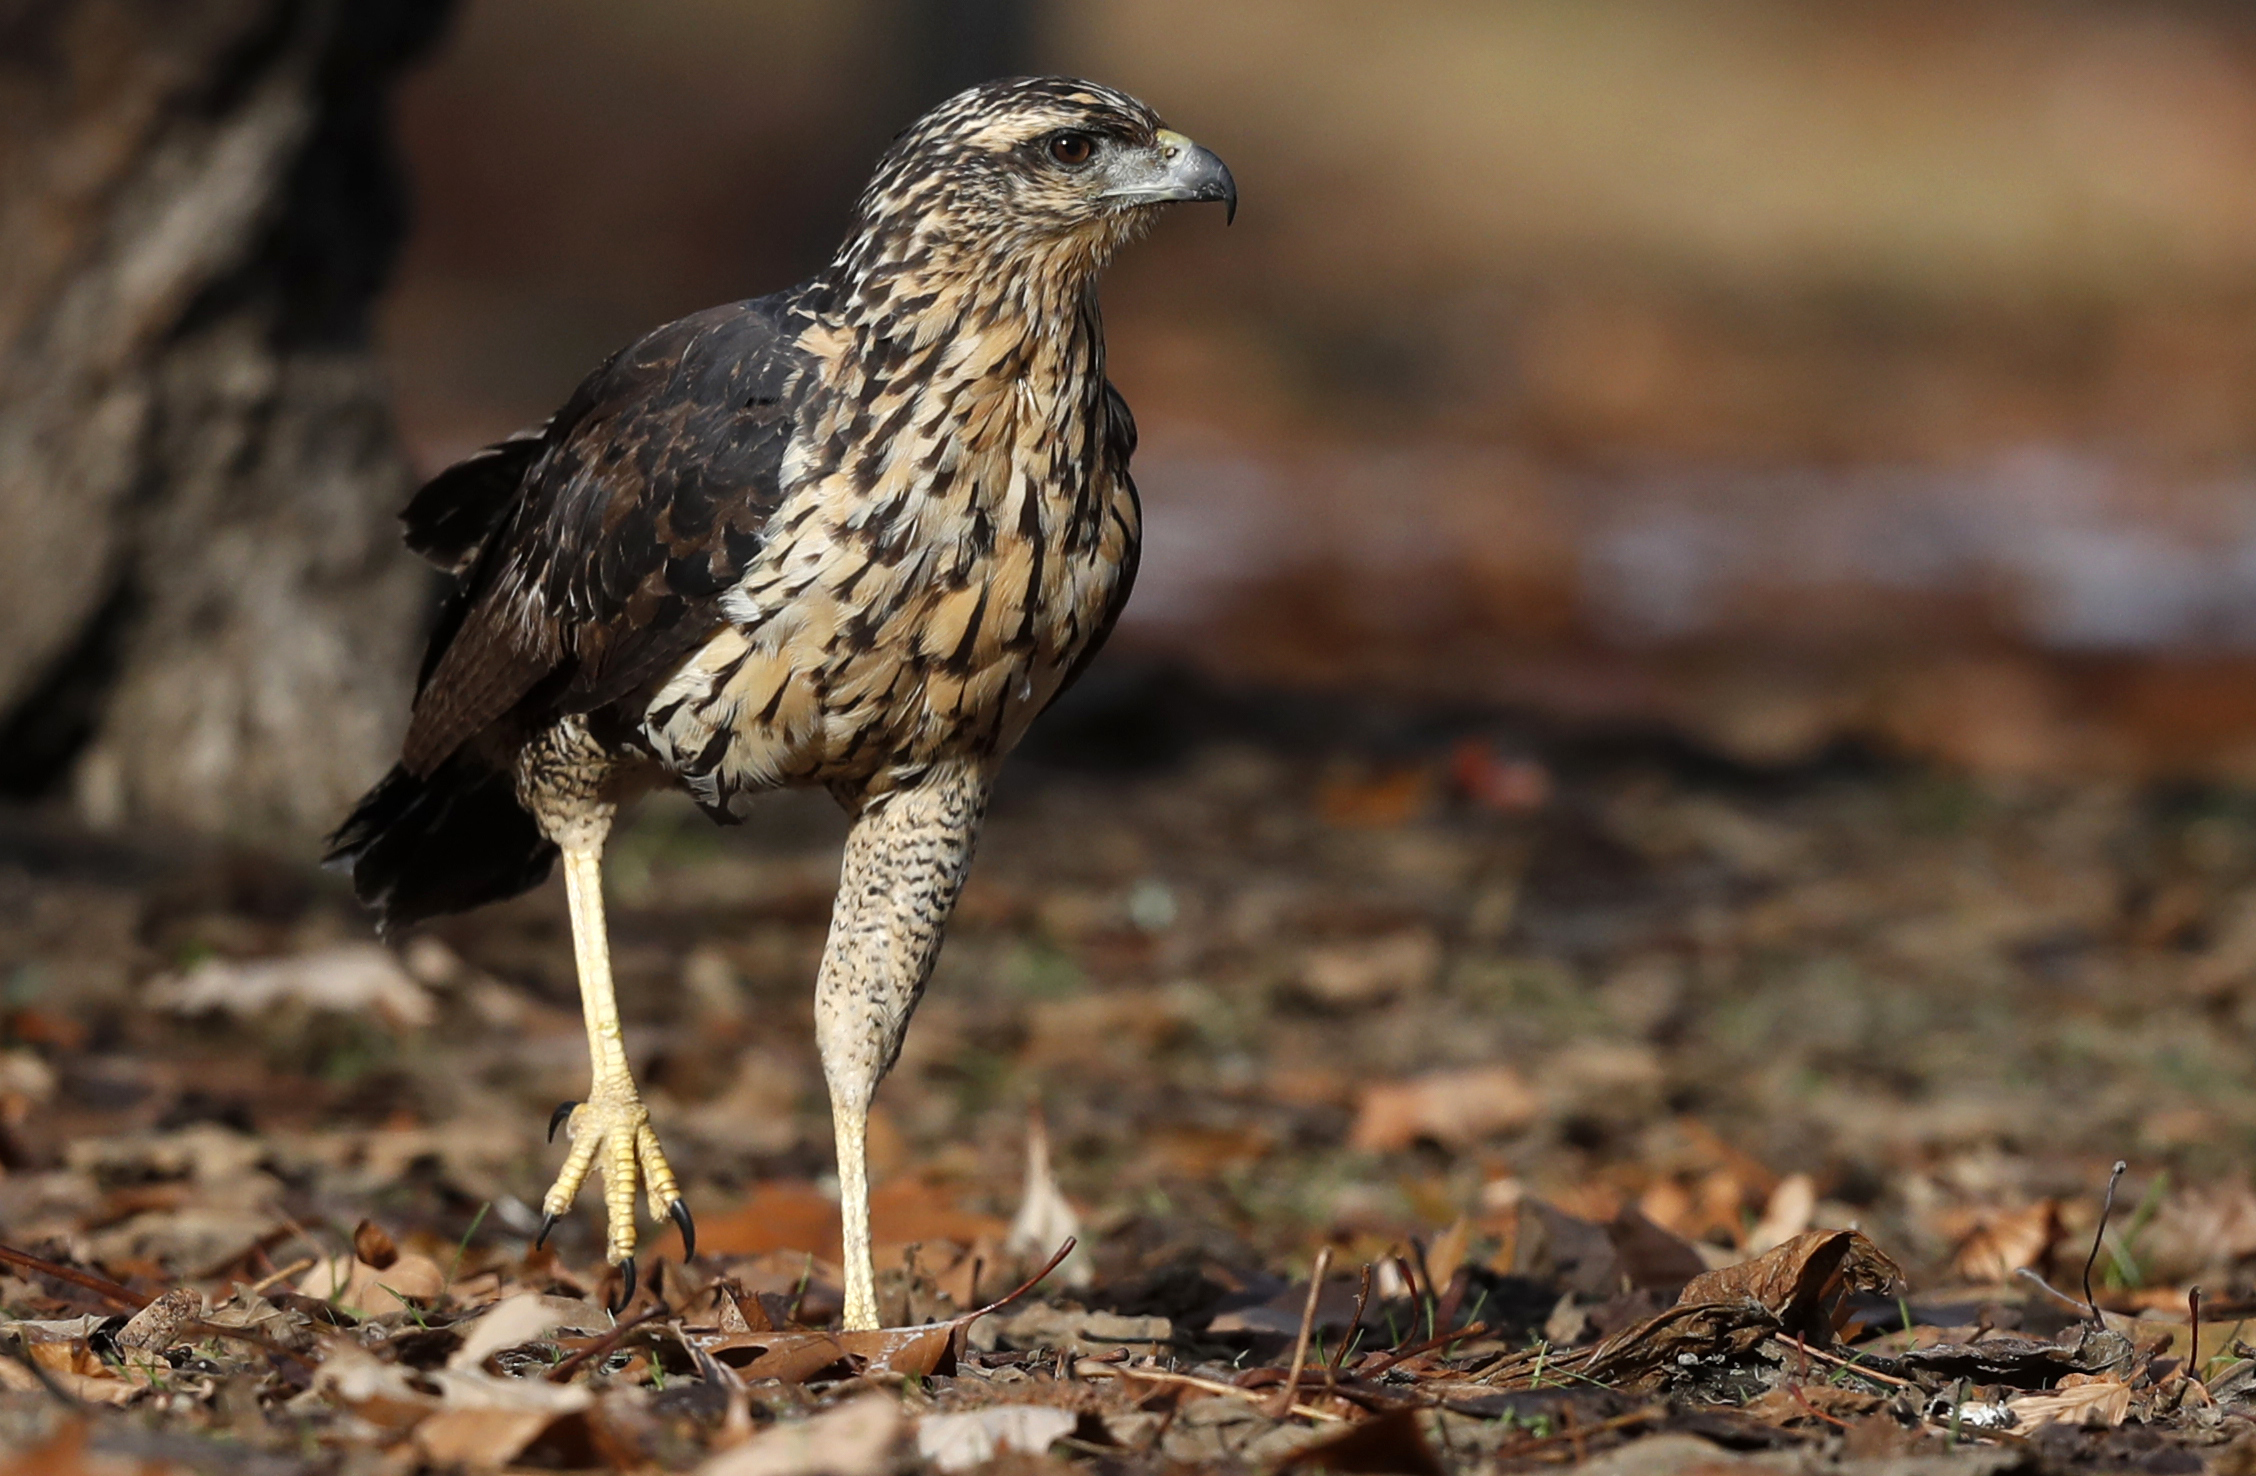 A great black hawk, a native of Central and South America, prowls the grounds of Deering Oaks Park, Friday, Nov. 30, 2018, in Portland, Maine. Audubon naturalist Doug Hitchcox said the young bird appeared to be in good health and in the process of molting. Maine residents sometimes sees rare birds, he said, but